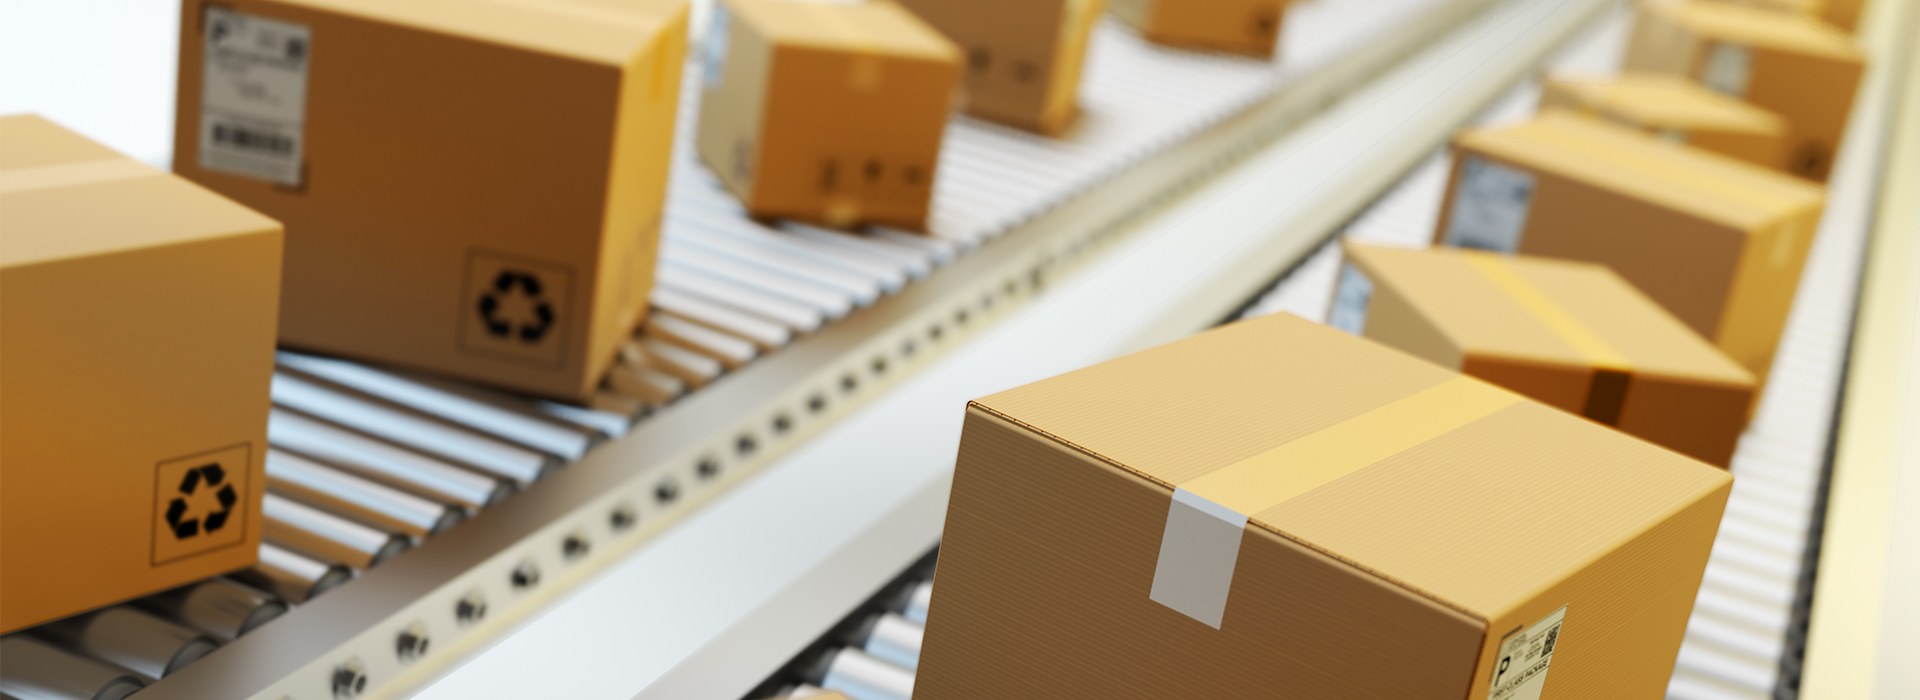 Closeup of warehouse kitting and fulfillment process for print on demand materials